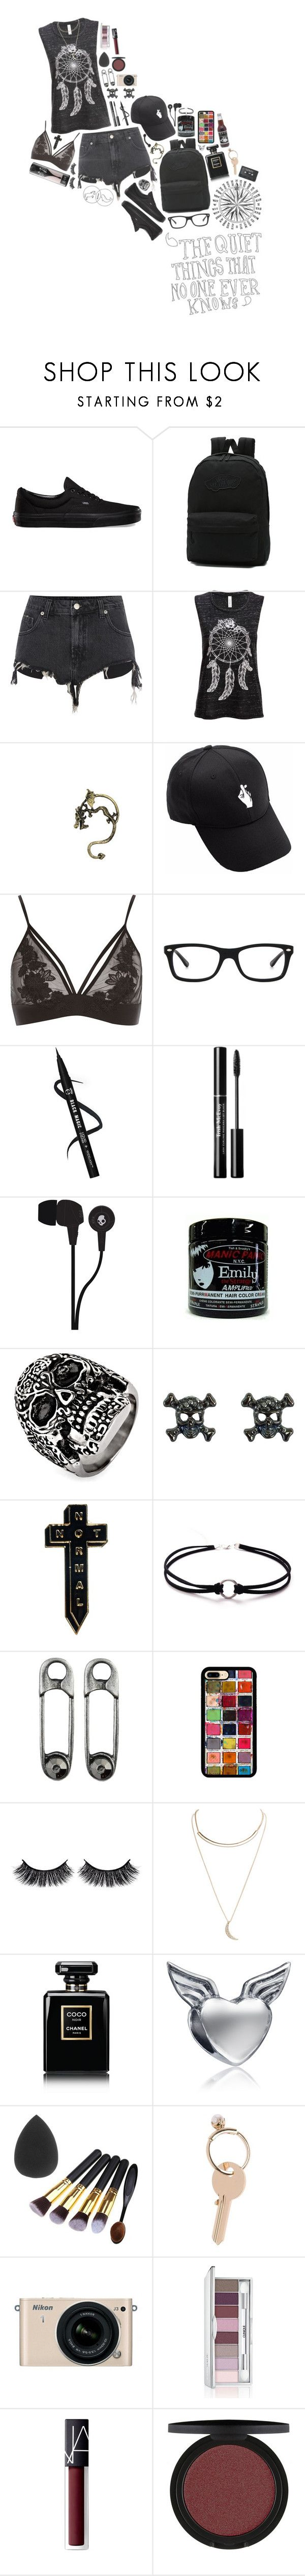 """""""The Quiet Things That No One Ever Knows"""" by k-pop-things-and-such ❤ liked on Polyvore featuring Vans, River Island, Ray-Ban, Skullcandy, West Coast Jewelry, NoHours, Battington, Wet Seal, Chanel and Bling Jewelry"""